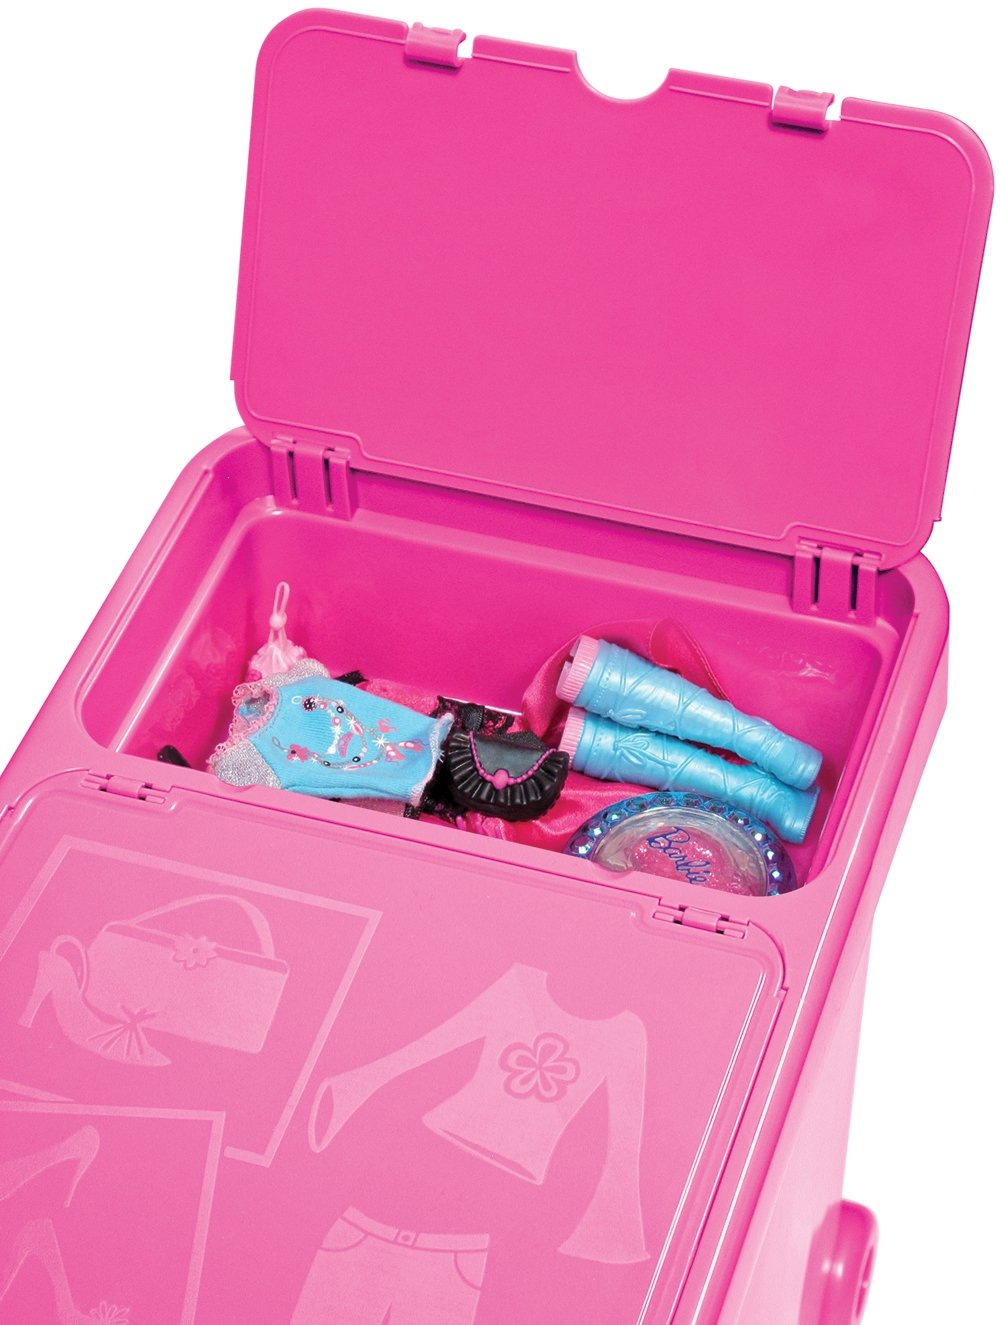 Barbie Store It All! Doll U0026 Accessory Rolling Bin (NEW): Amazon.co.uk: Toys  U0026 Games